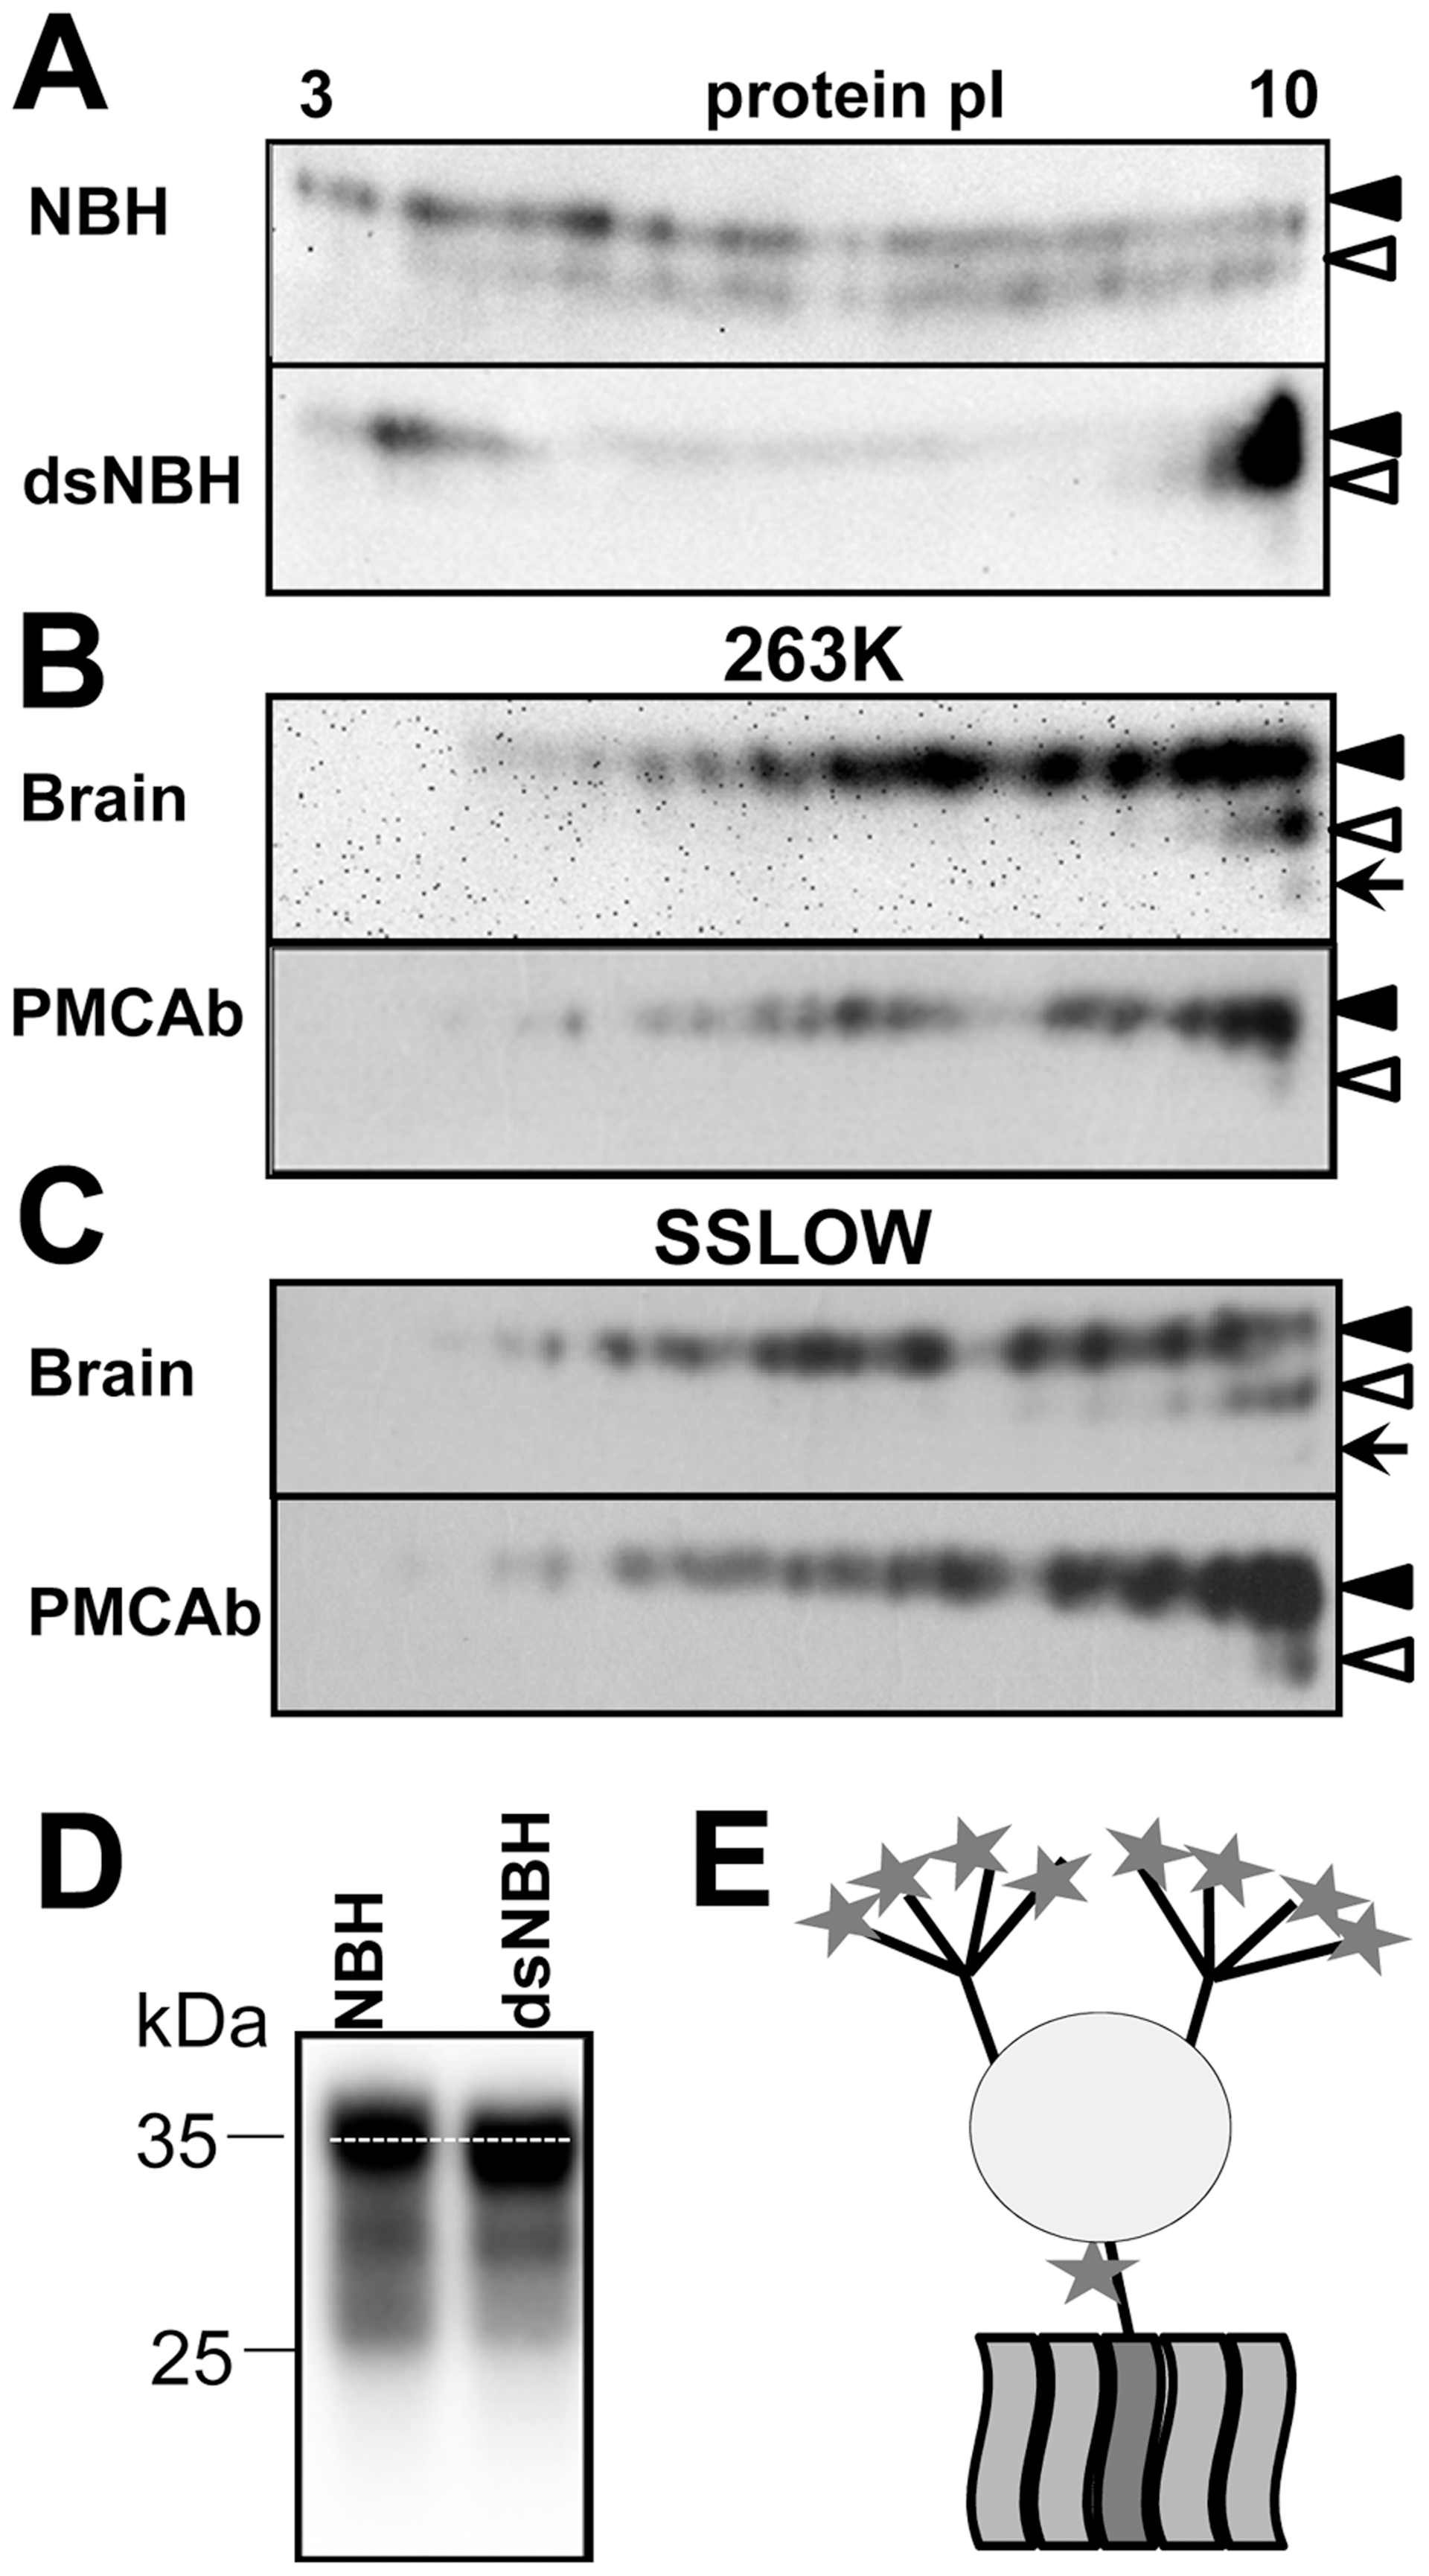 2D analysis of PrP<sup>C</sup> and brain- and PMCAb-derived PrP<sup>Sc</sup>.